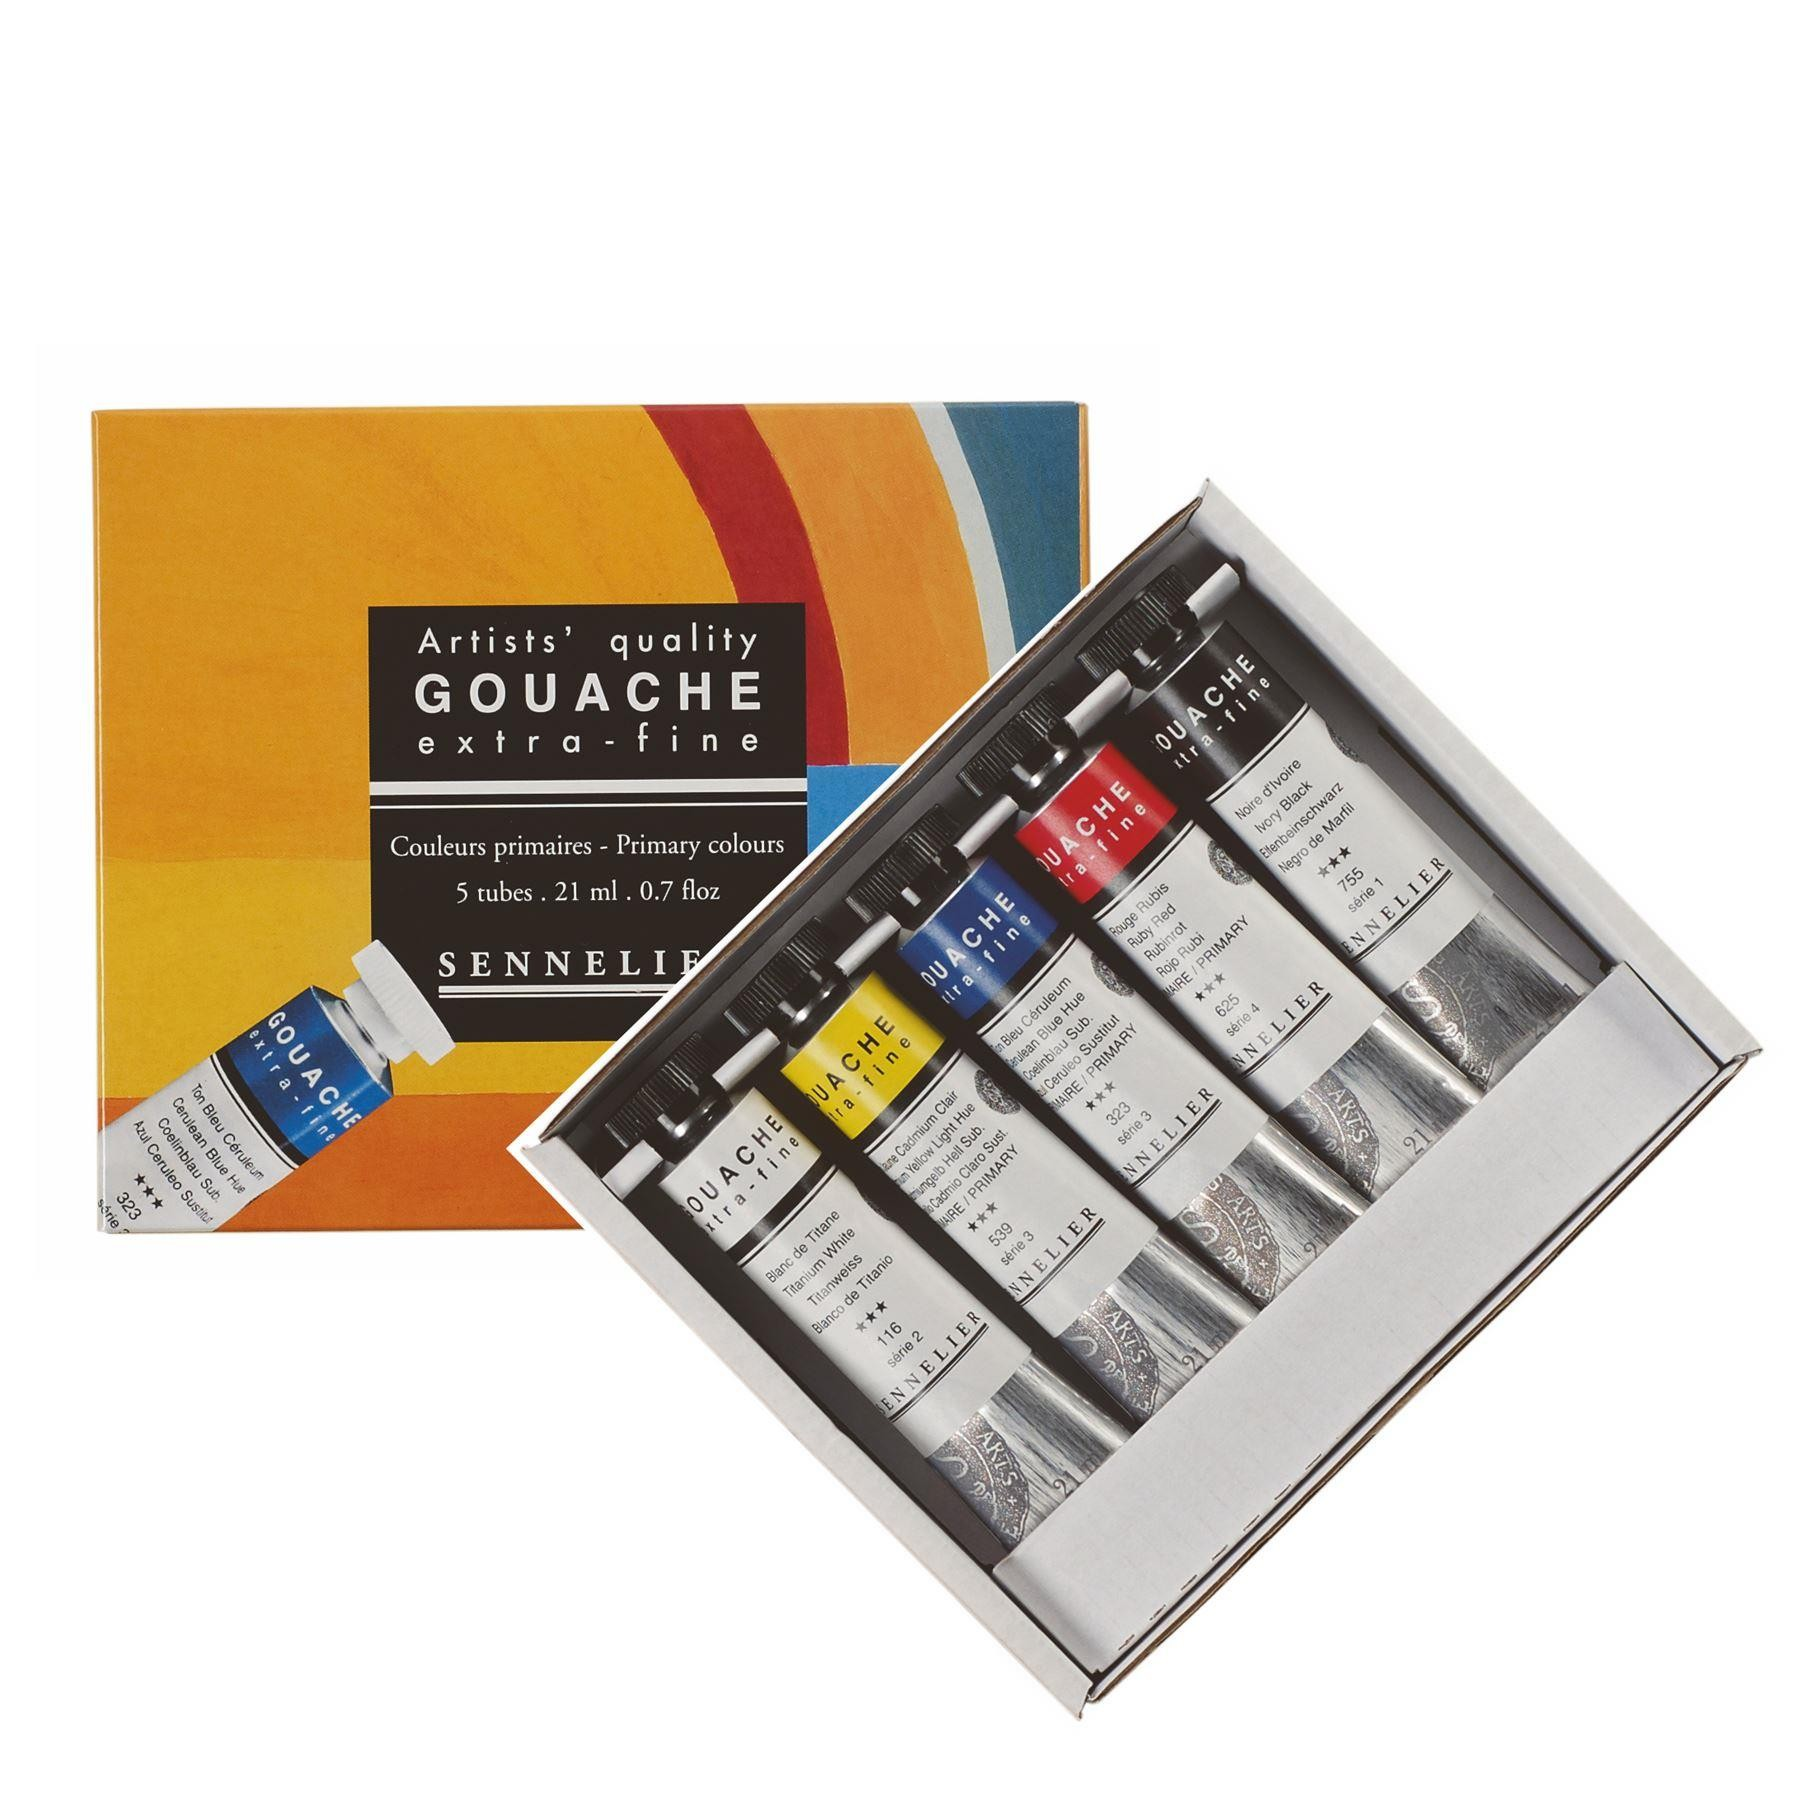 Gouache extra fine paint Sennelier set of 5